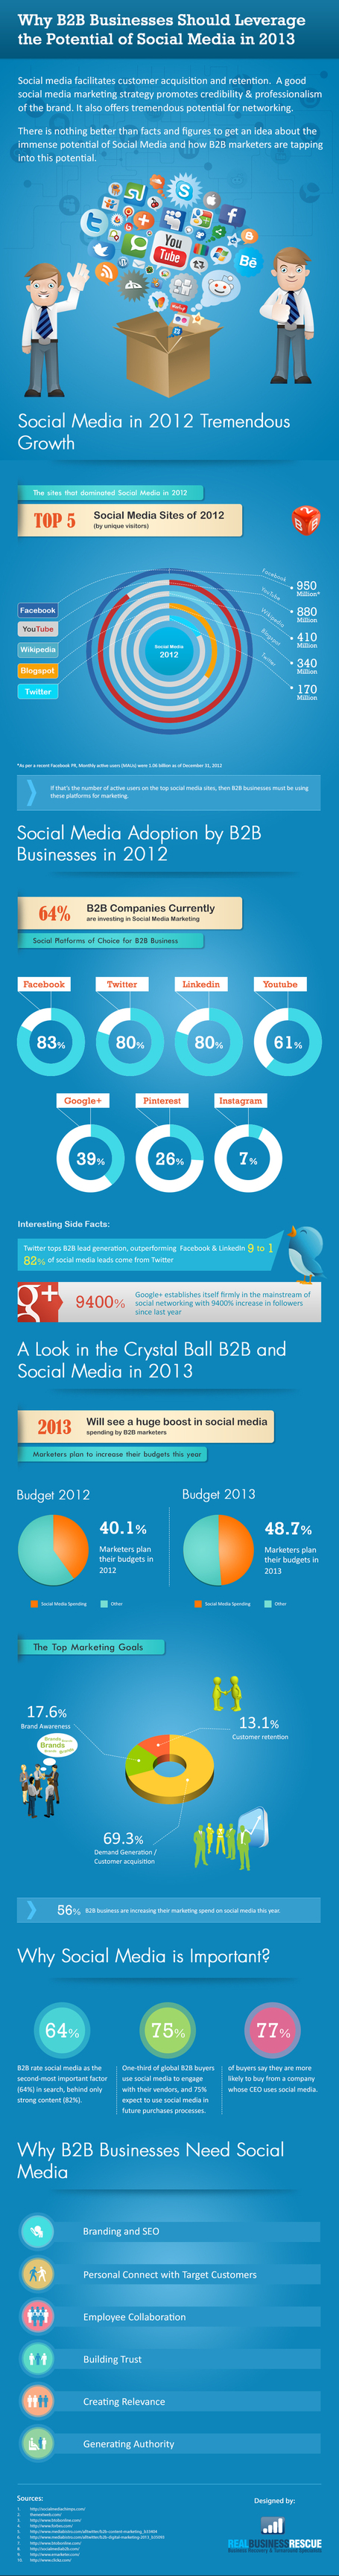 Why B2B Companies Must Invest in Social Media in 2013 | Social medias & Digital Marketing | Scoop.it